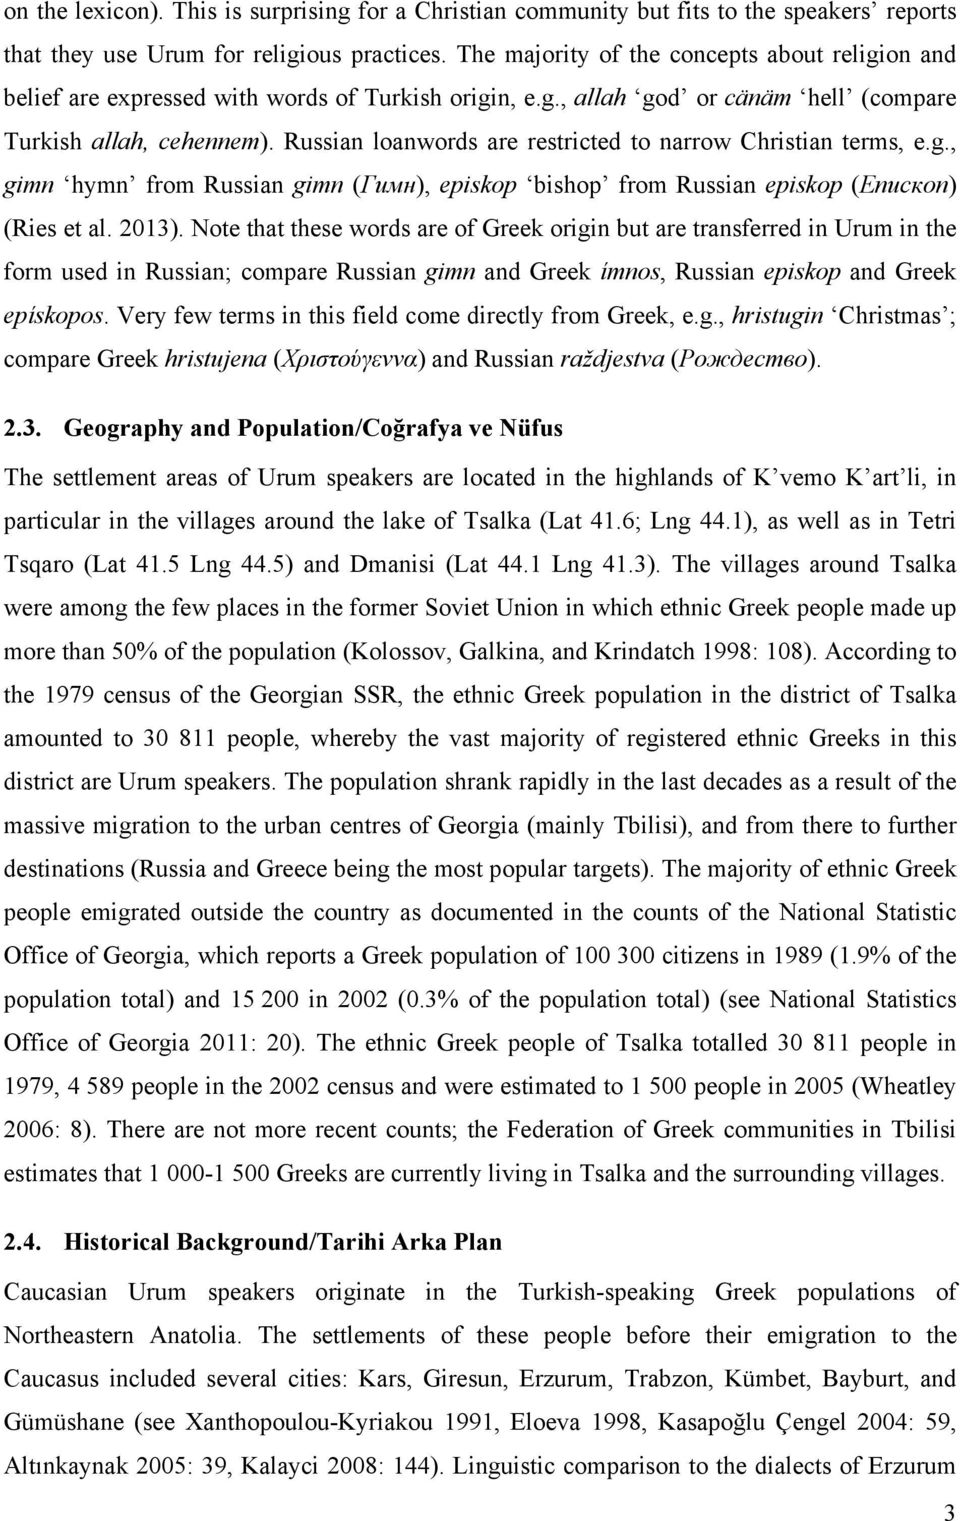 Russian loanwords are restricted to narrow Christian terms, e.g., gimn hymn from Russian gimn (Гимн), episkop bishop from Russian episkop (Епископ) (Ries et al. 2013).